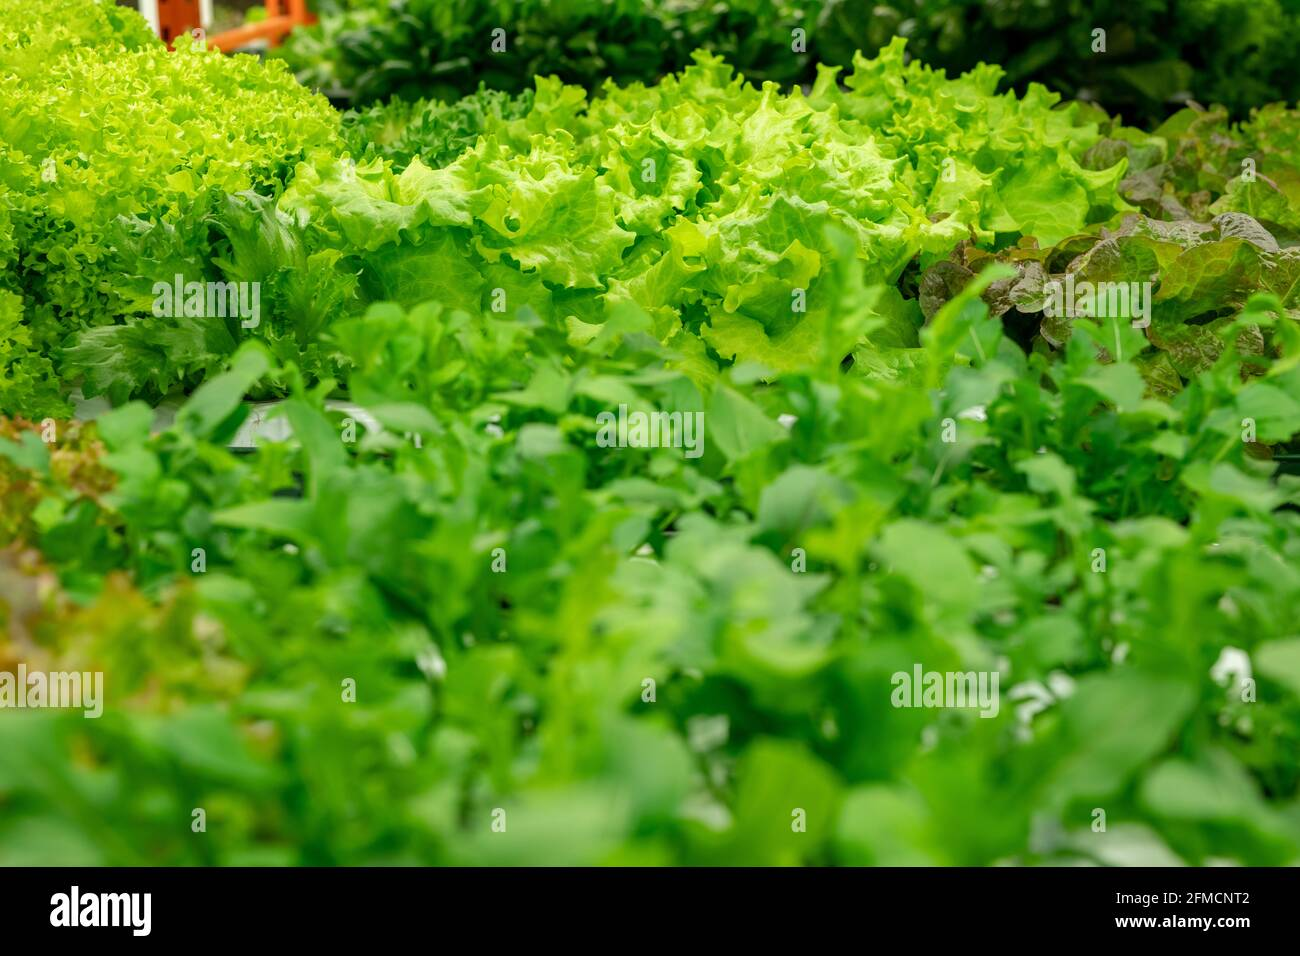 Close-up of green curly endive growing with another sort of greens in greenhouse Stock Photo